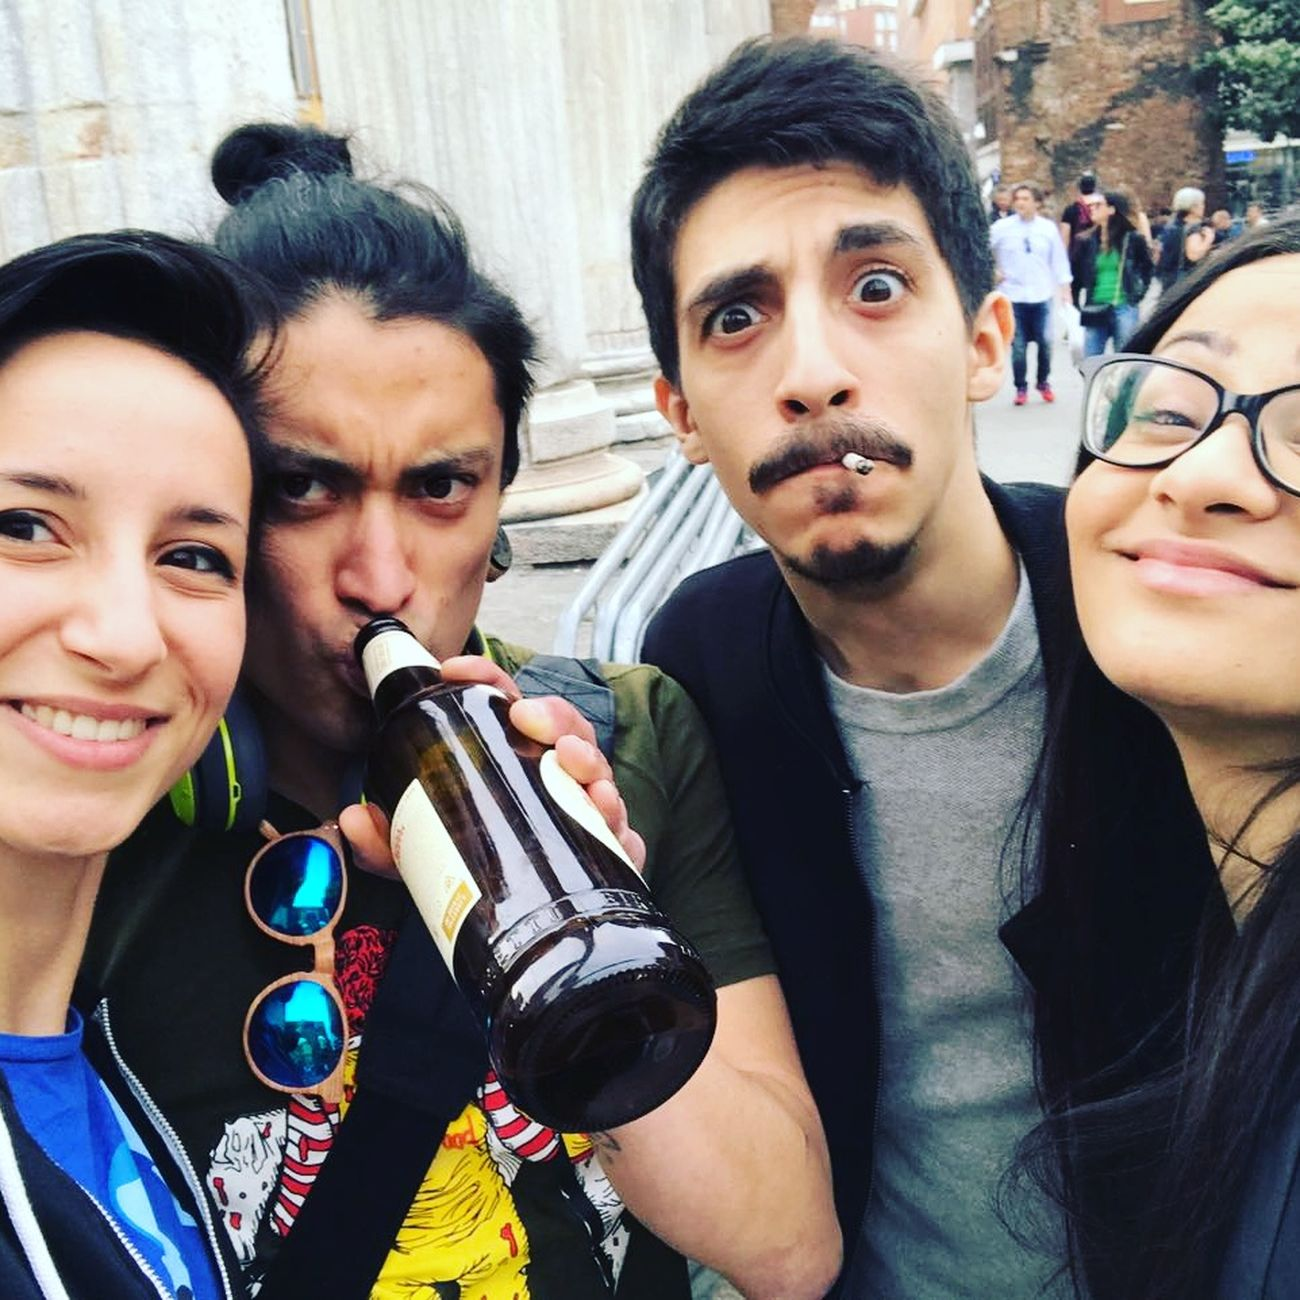 People Group Of People Friendship Day City Alcool  Beer Street City Life Architecture Smiling Person